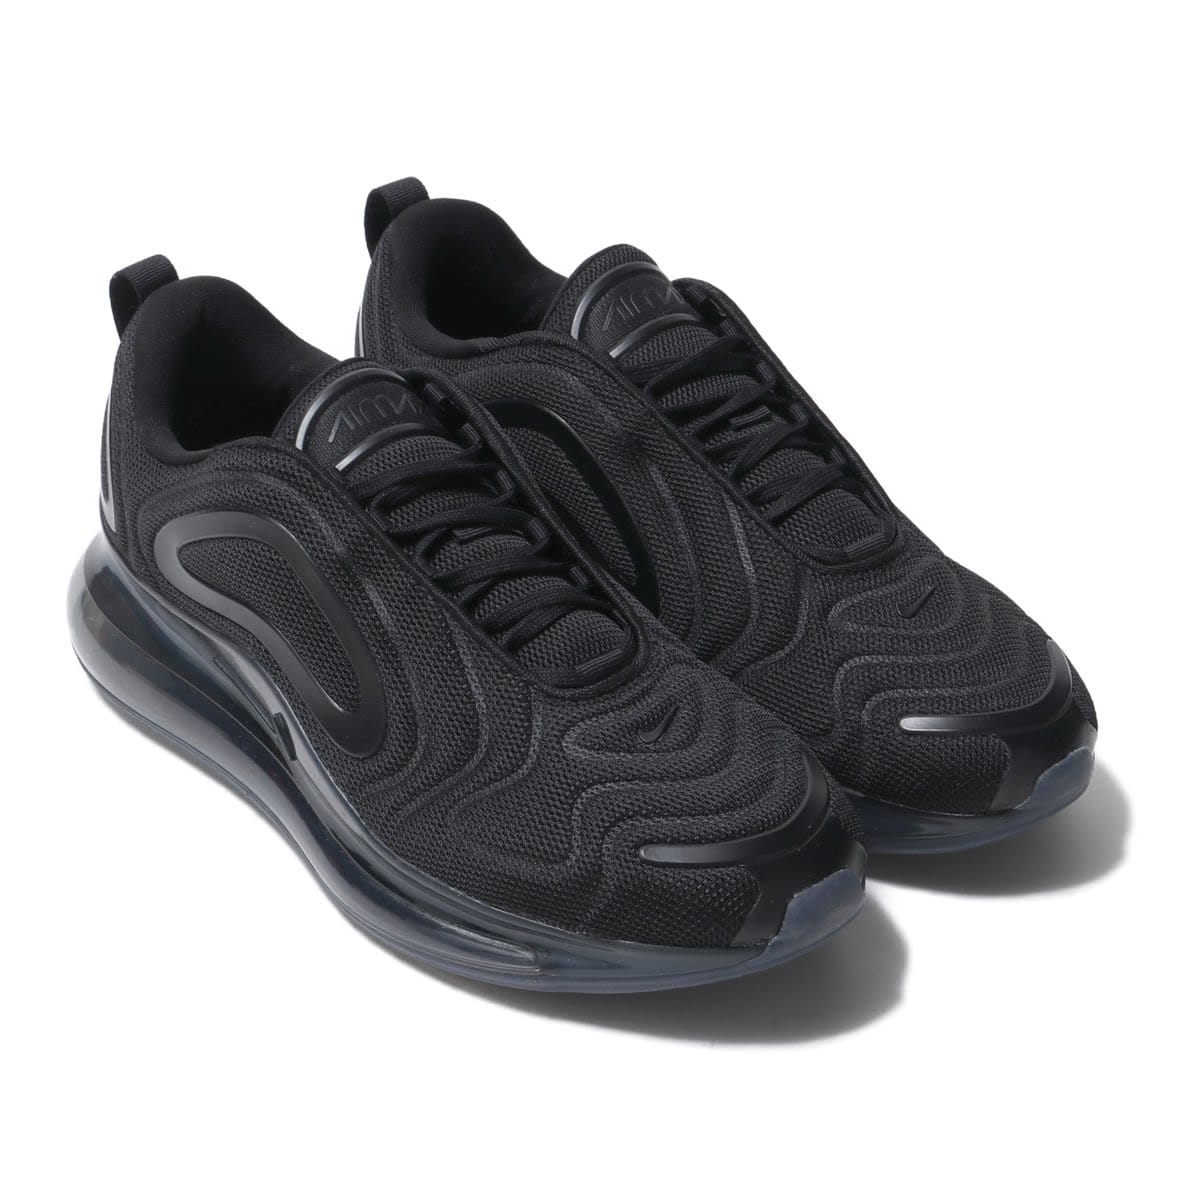 NIKE AIR MAX 720 BLACK/BLACK-ANTHRACITE 19FA-I_photo_large